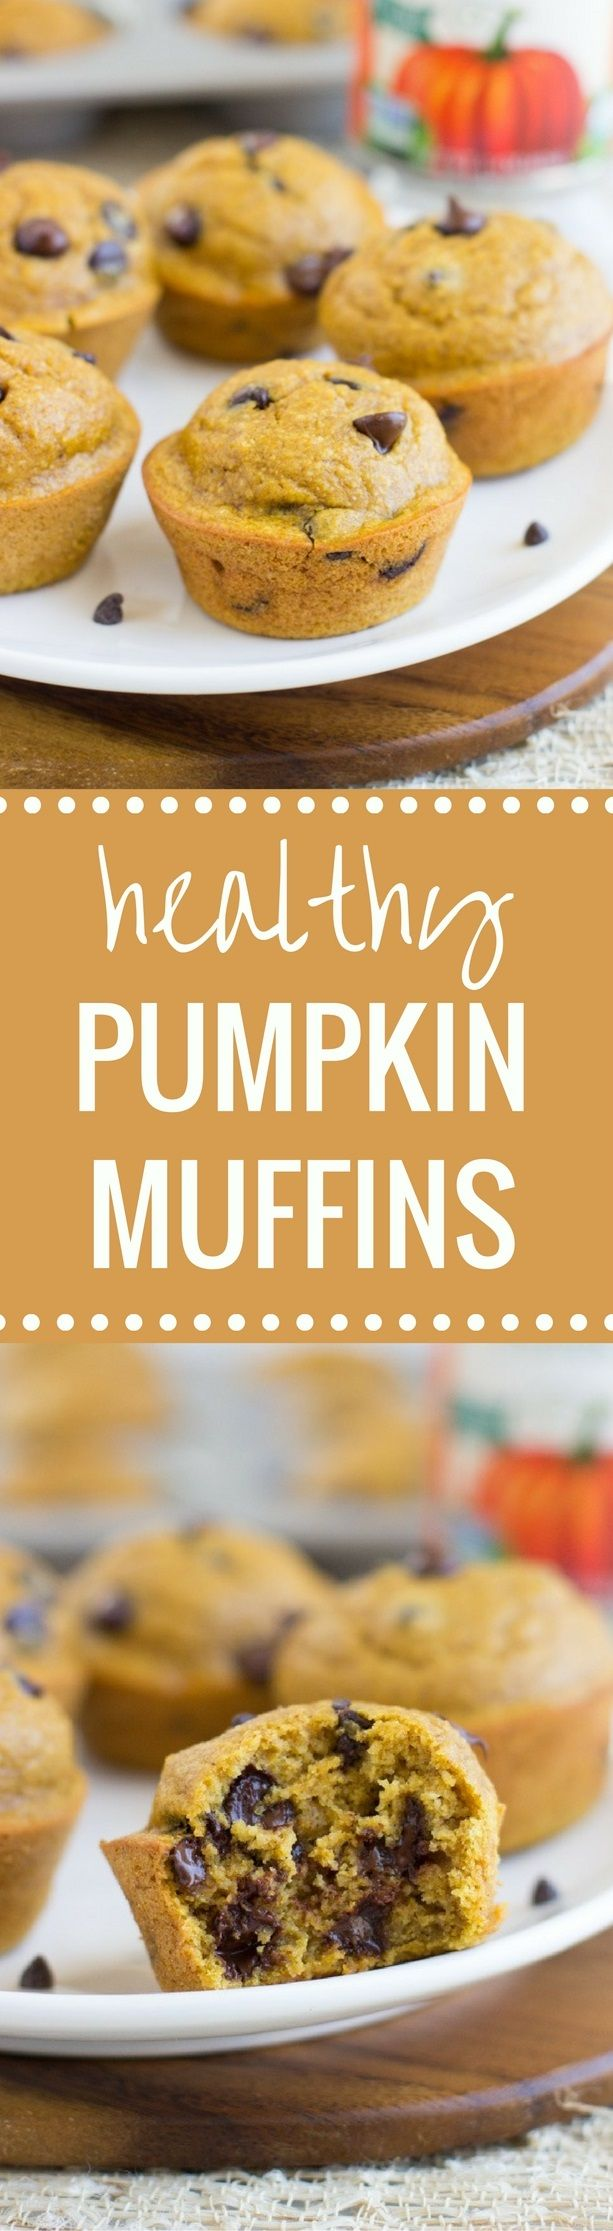 Healthy Flourless Pumpkin Muffins are moist, delicious, and super easy to make. Naturally gluten-free, oil-free, dairy-free, and refined sugar-free!